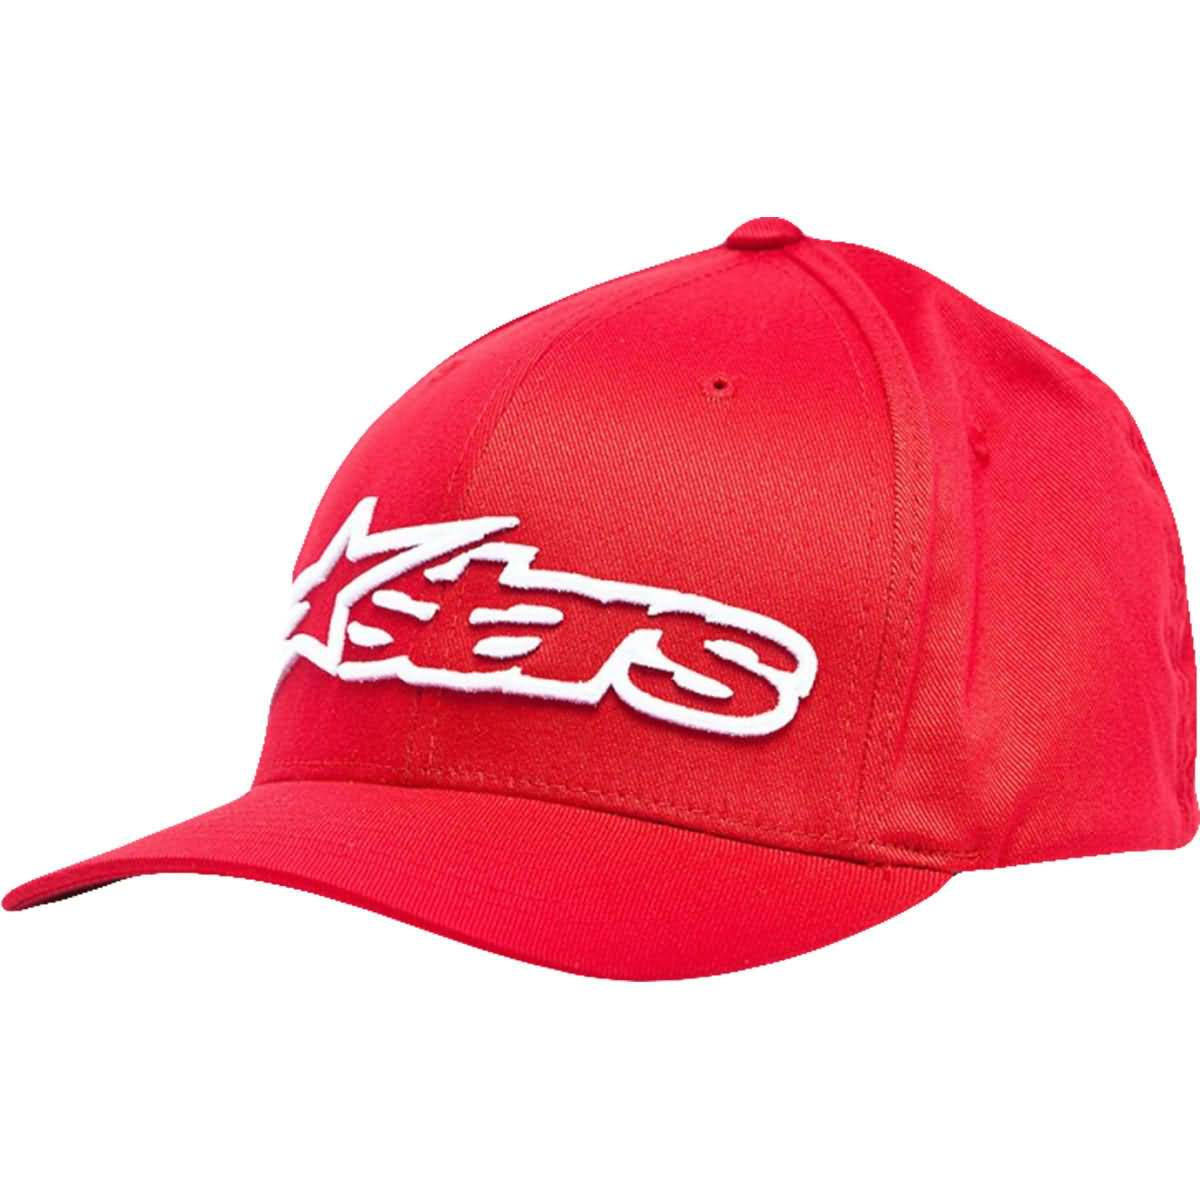 Alpinestars Blaze Men's Flexfit Hats-1039